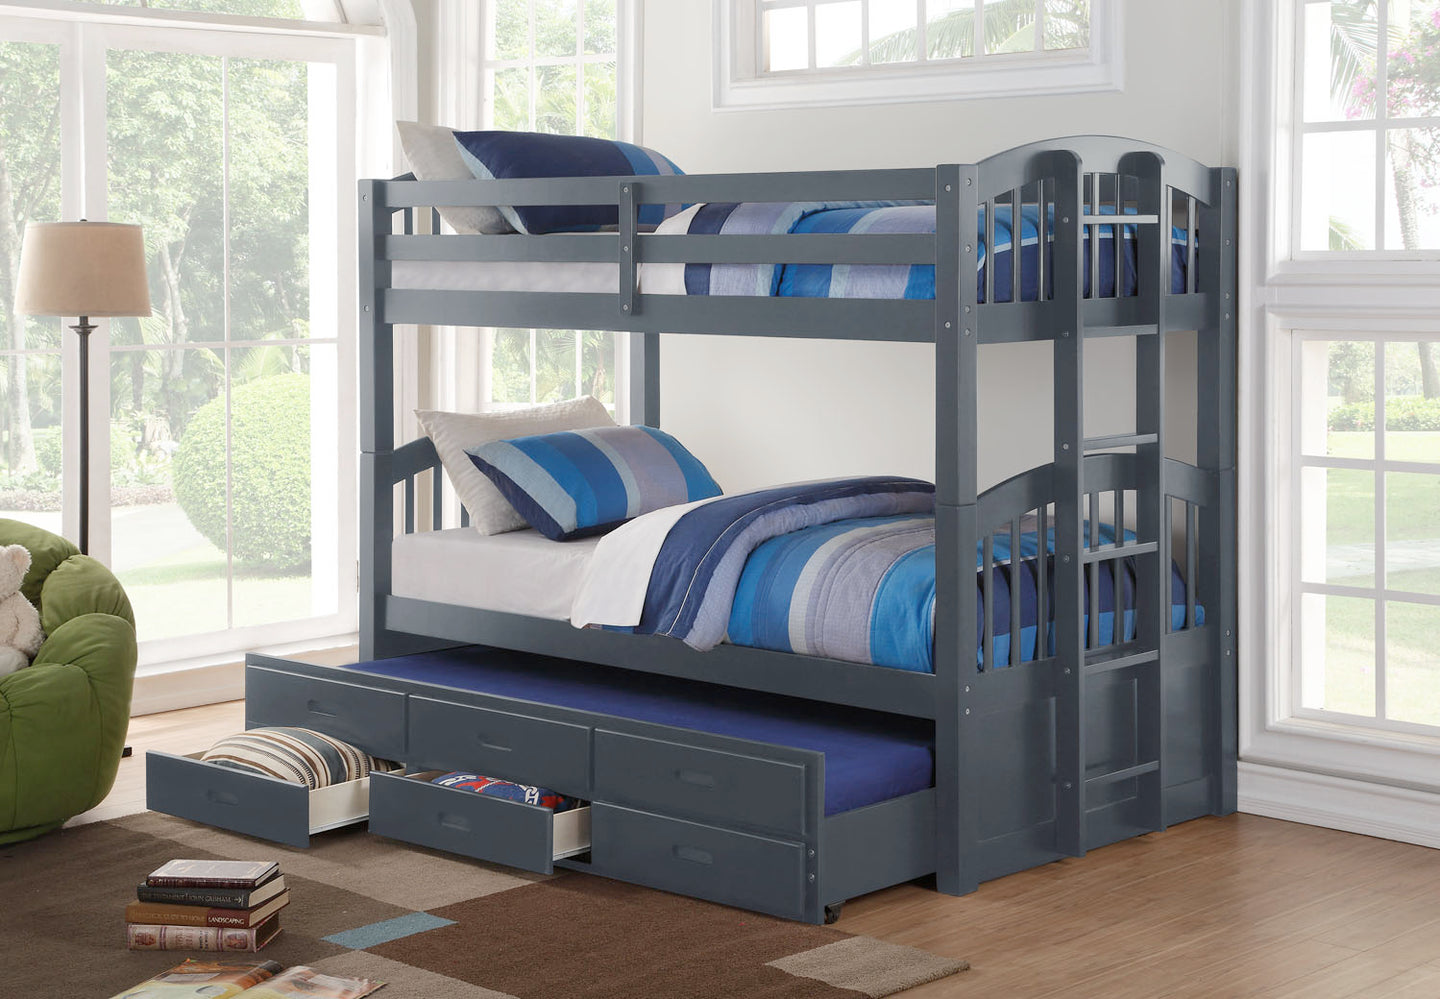 SINGLE/SINGLE BUNK BED WITH TRUNDLE & DRAWERS